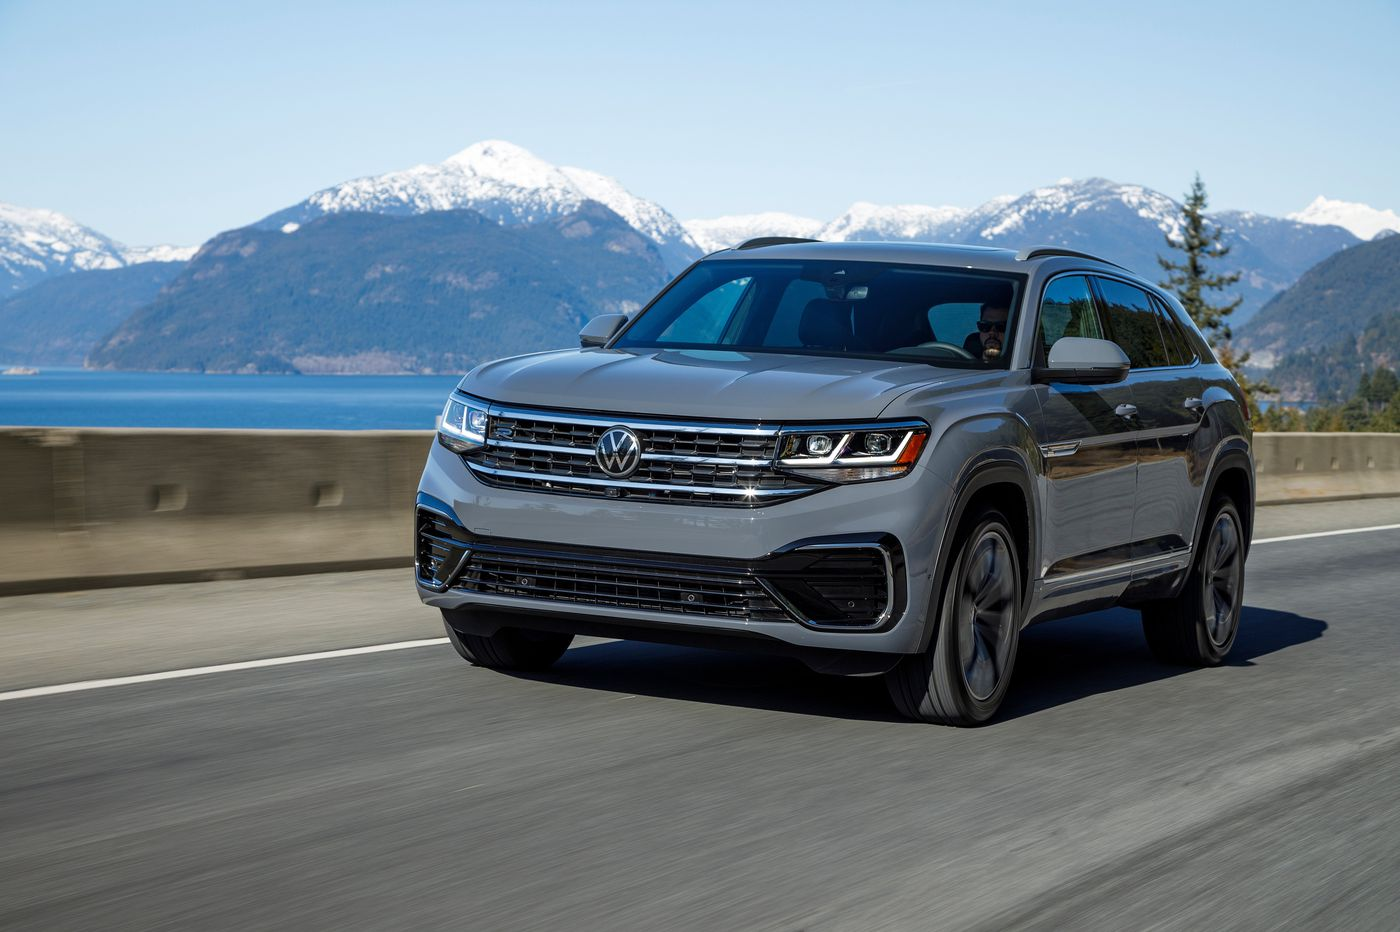 SUV test, part one: VW Atlas Cross Sport offers fun on the curves